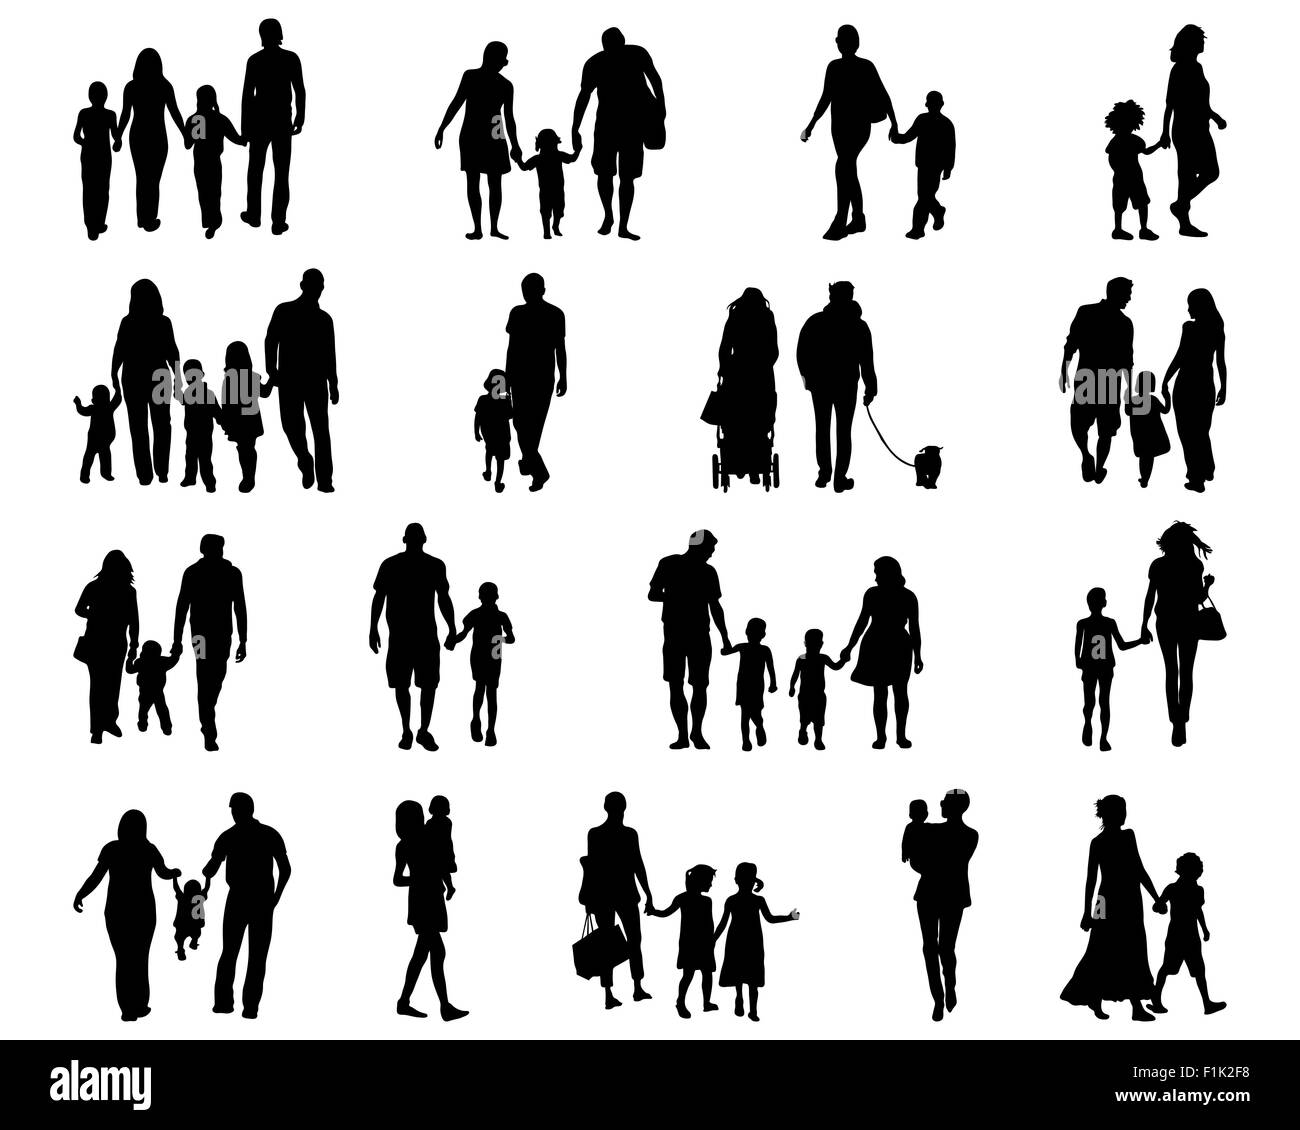 black silhouettes of families in walk vector stock photo alamy https www alamy com stock photo black silhouettes of families in walk vector 87085580 html